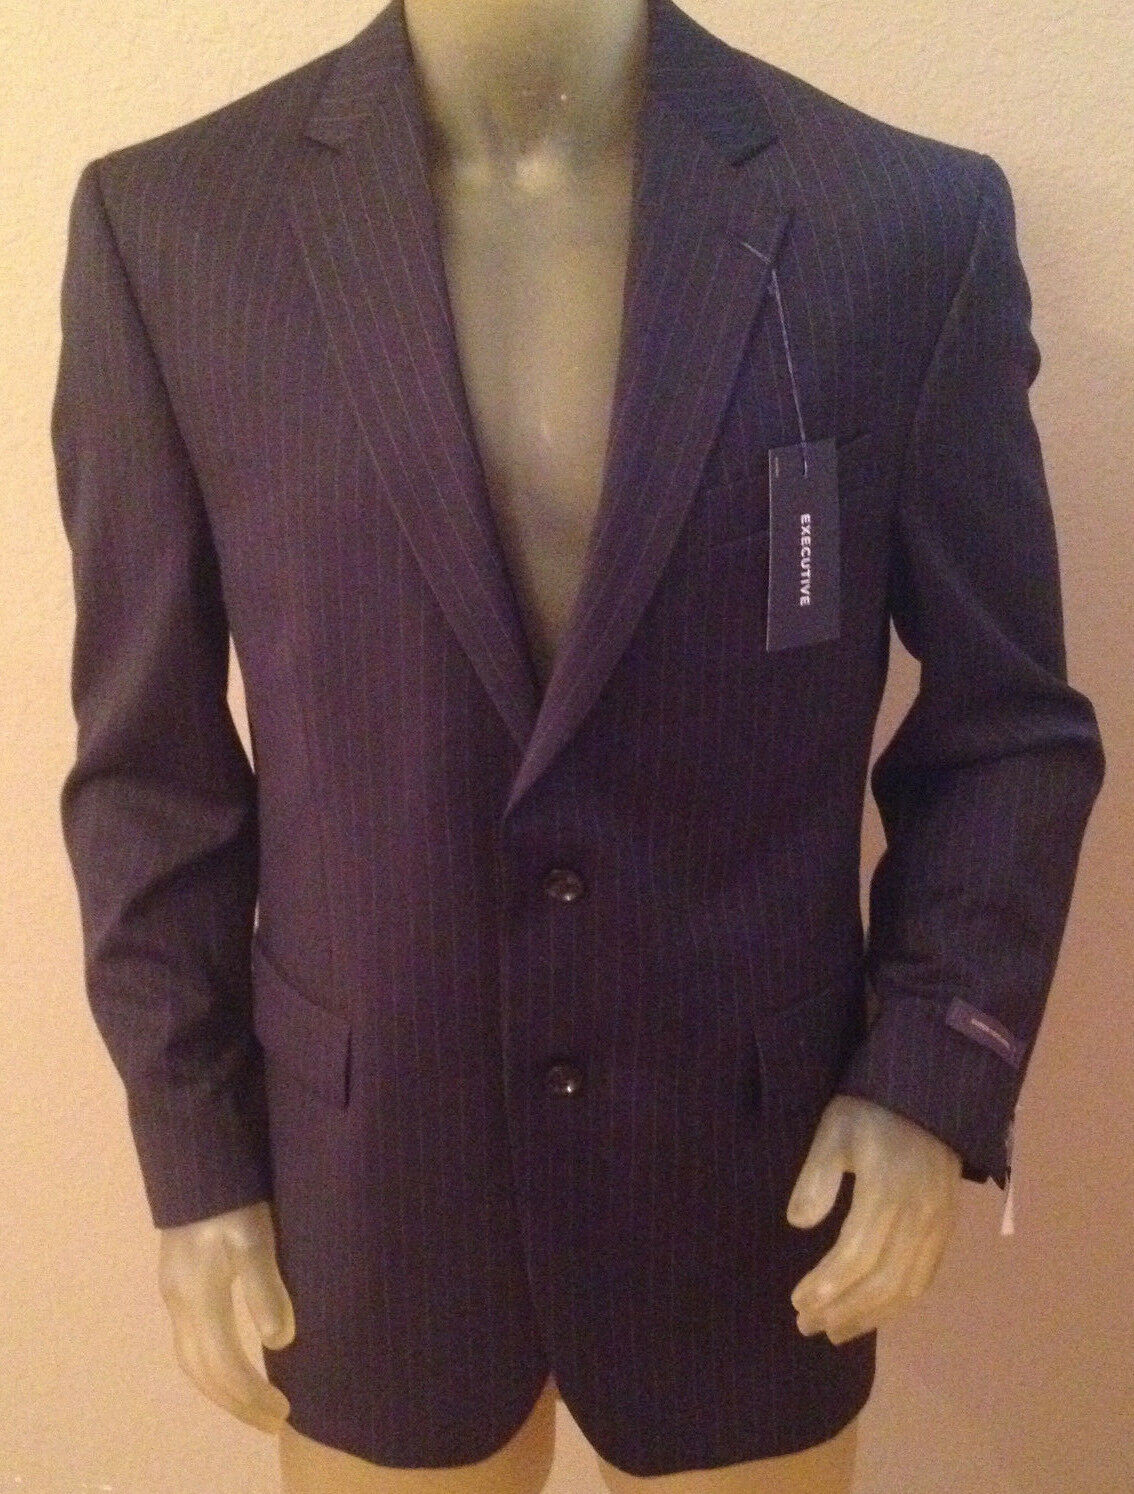 NWT  260 Stafford Executive Classic Fit Navy Stripe Suit jacke herren 46R